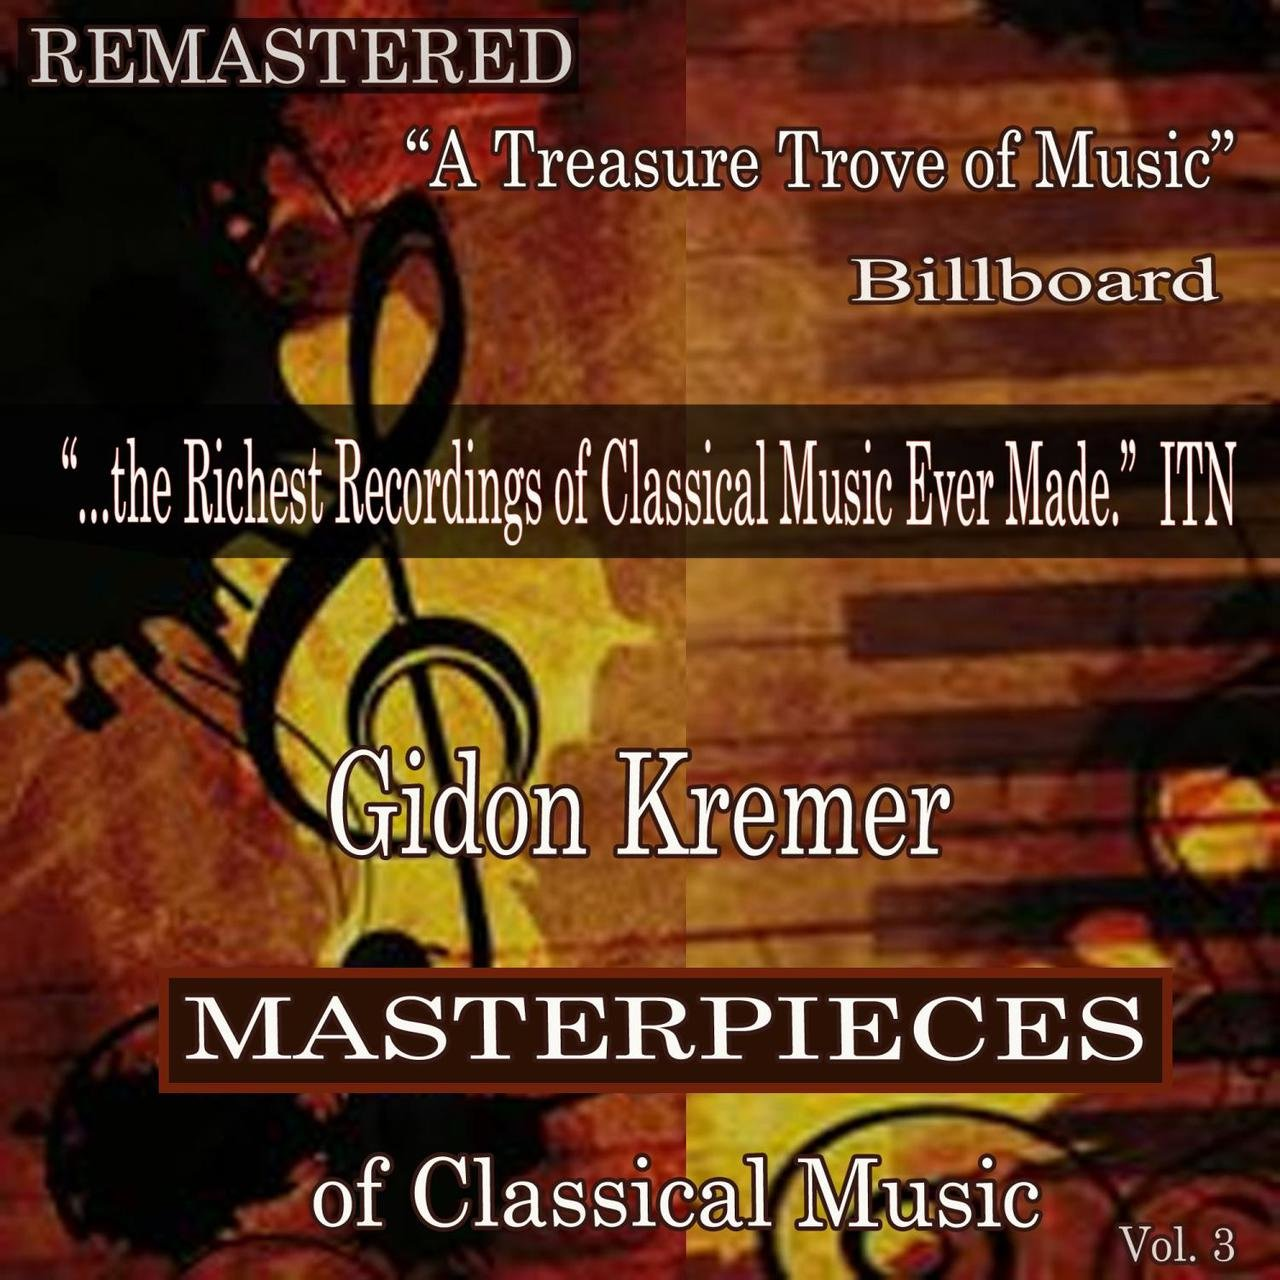 Gidon Kremer - Masterpieces of Classical Music Remastered, Vol. 3